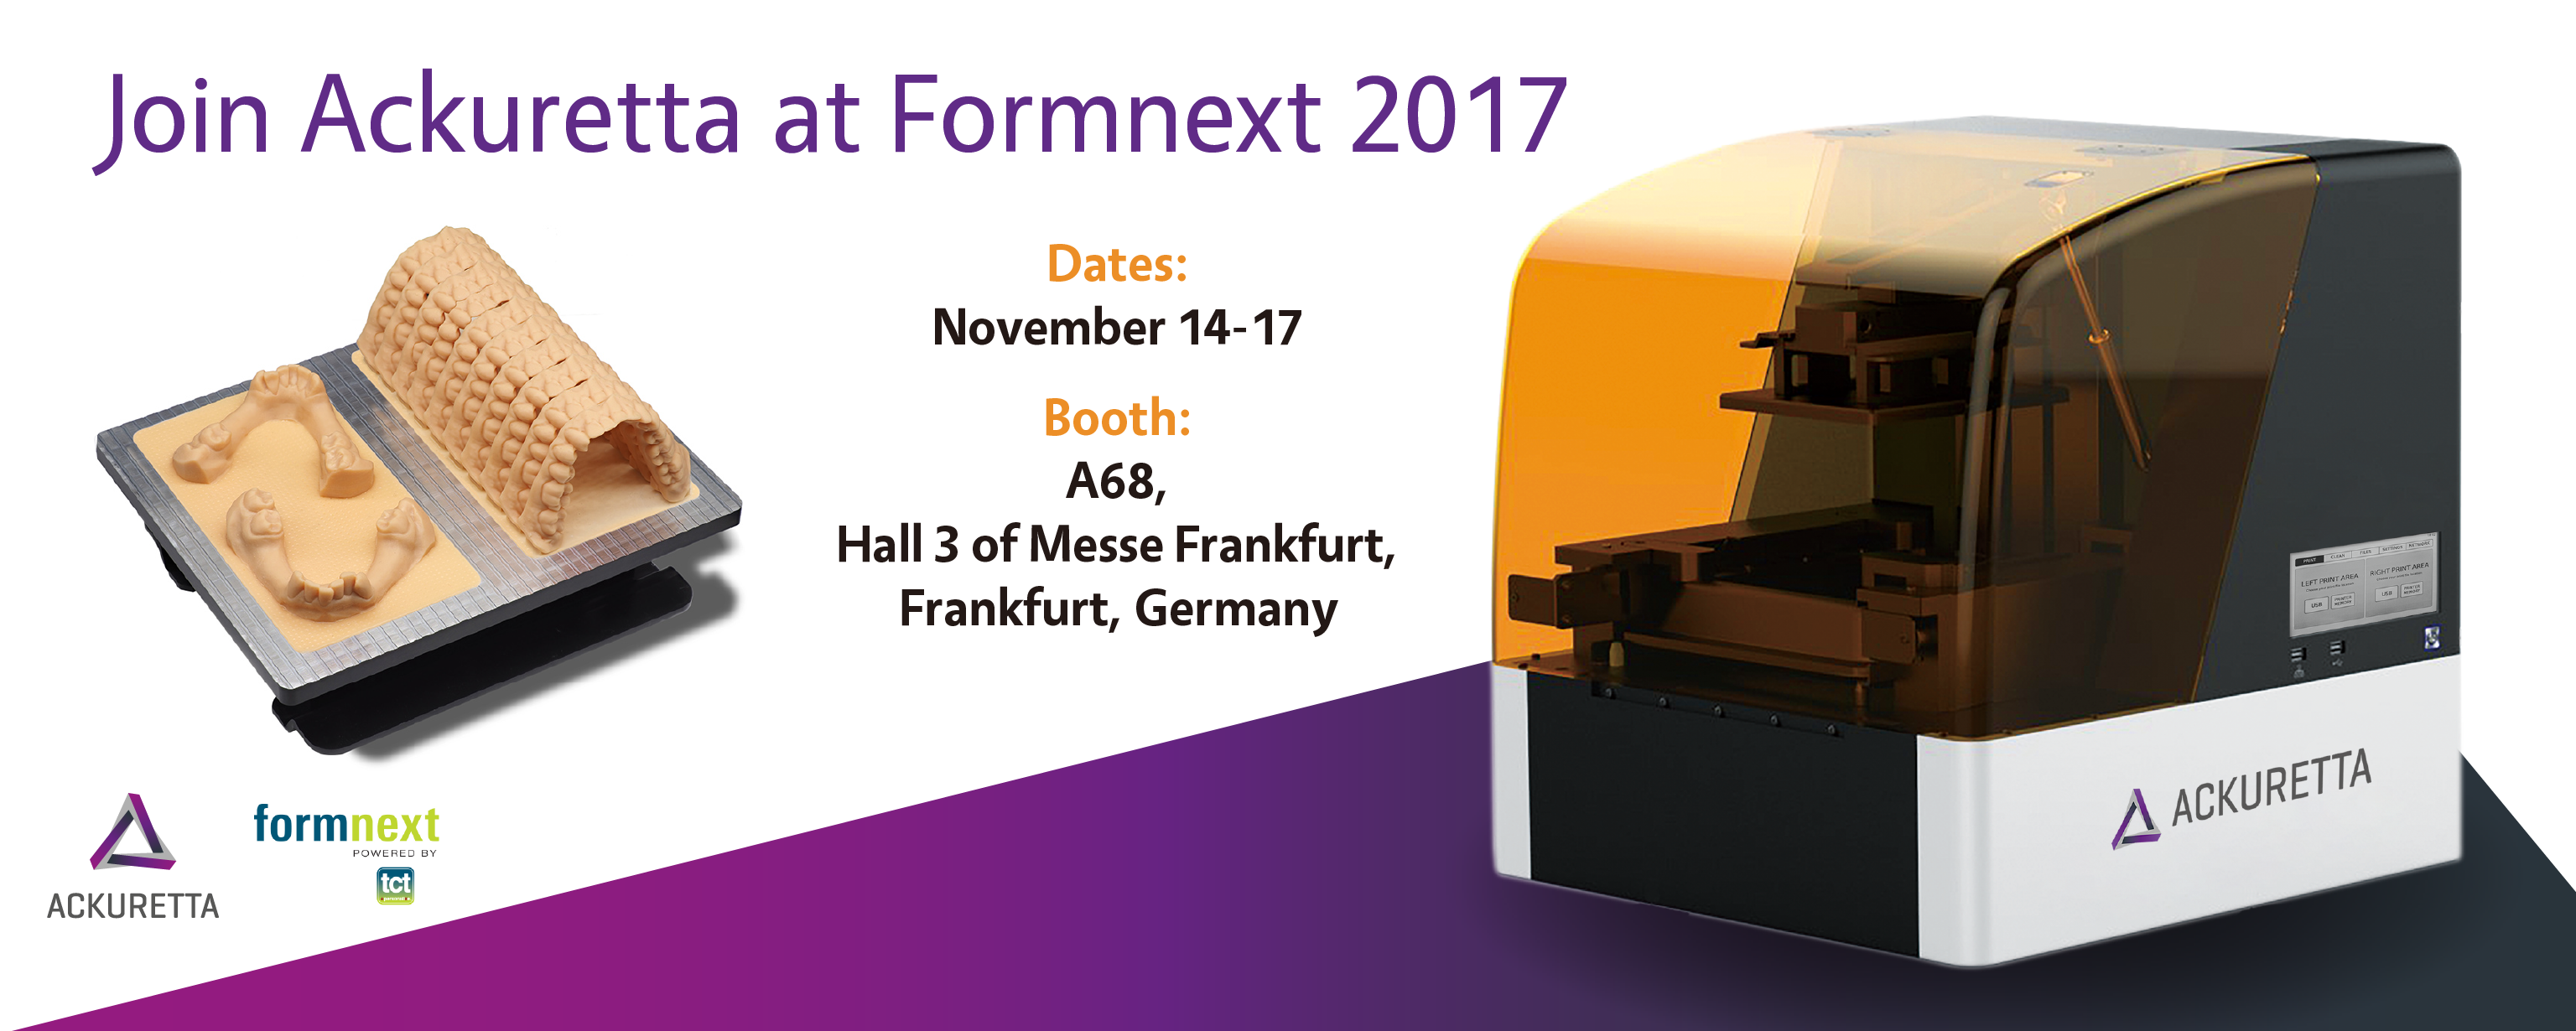 Join_Ackuretta_at_Formnext_web.png